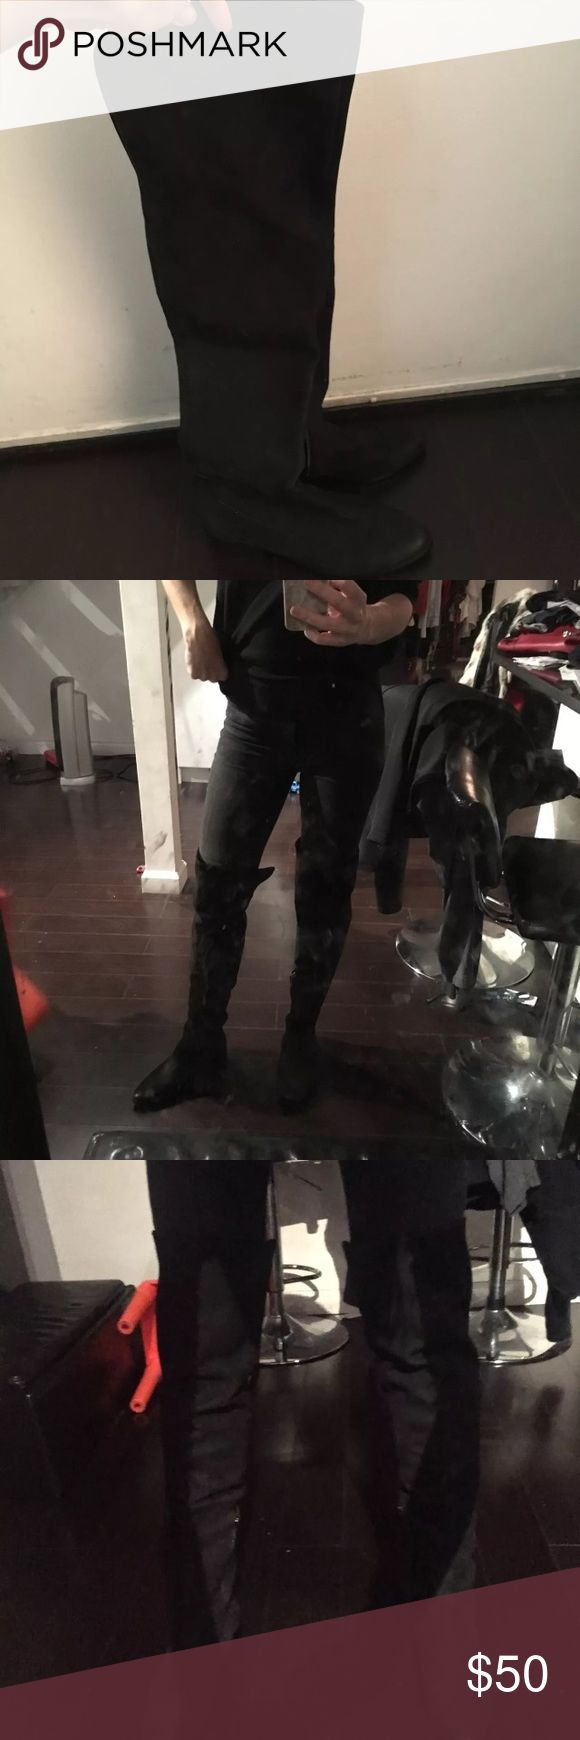 Aldo black suede over the knee boots new Cyber Monday / Black Friday deal! Size 9 Brand new  Paid $200  Gorgeous & sexy black suede over the knee boots by Aldo.  Works also for wide calves. Similar to Zara.. Aldo Shoes Over the Knee Boots